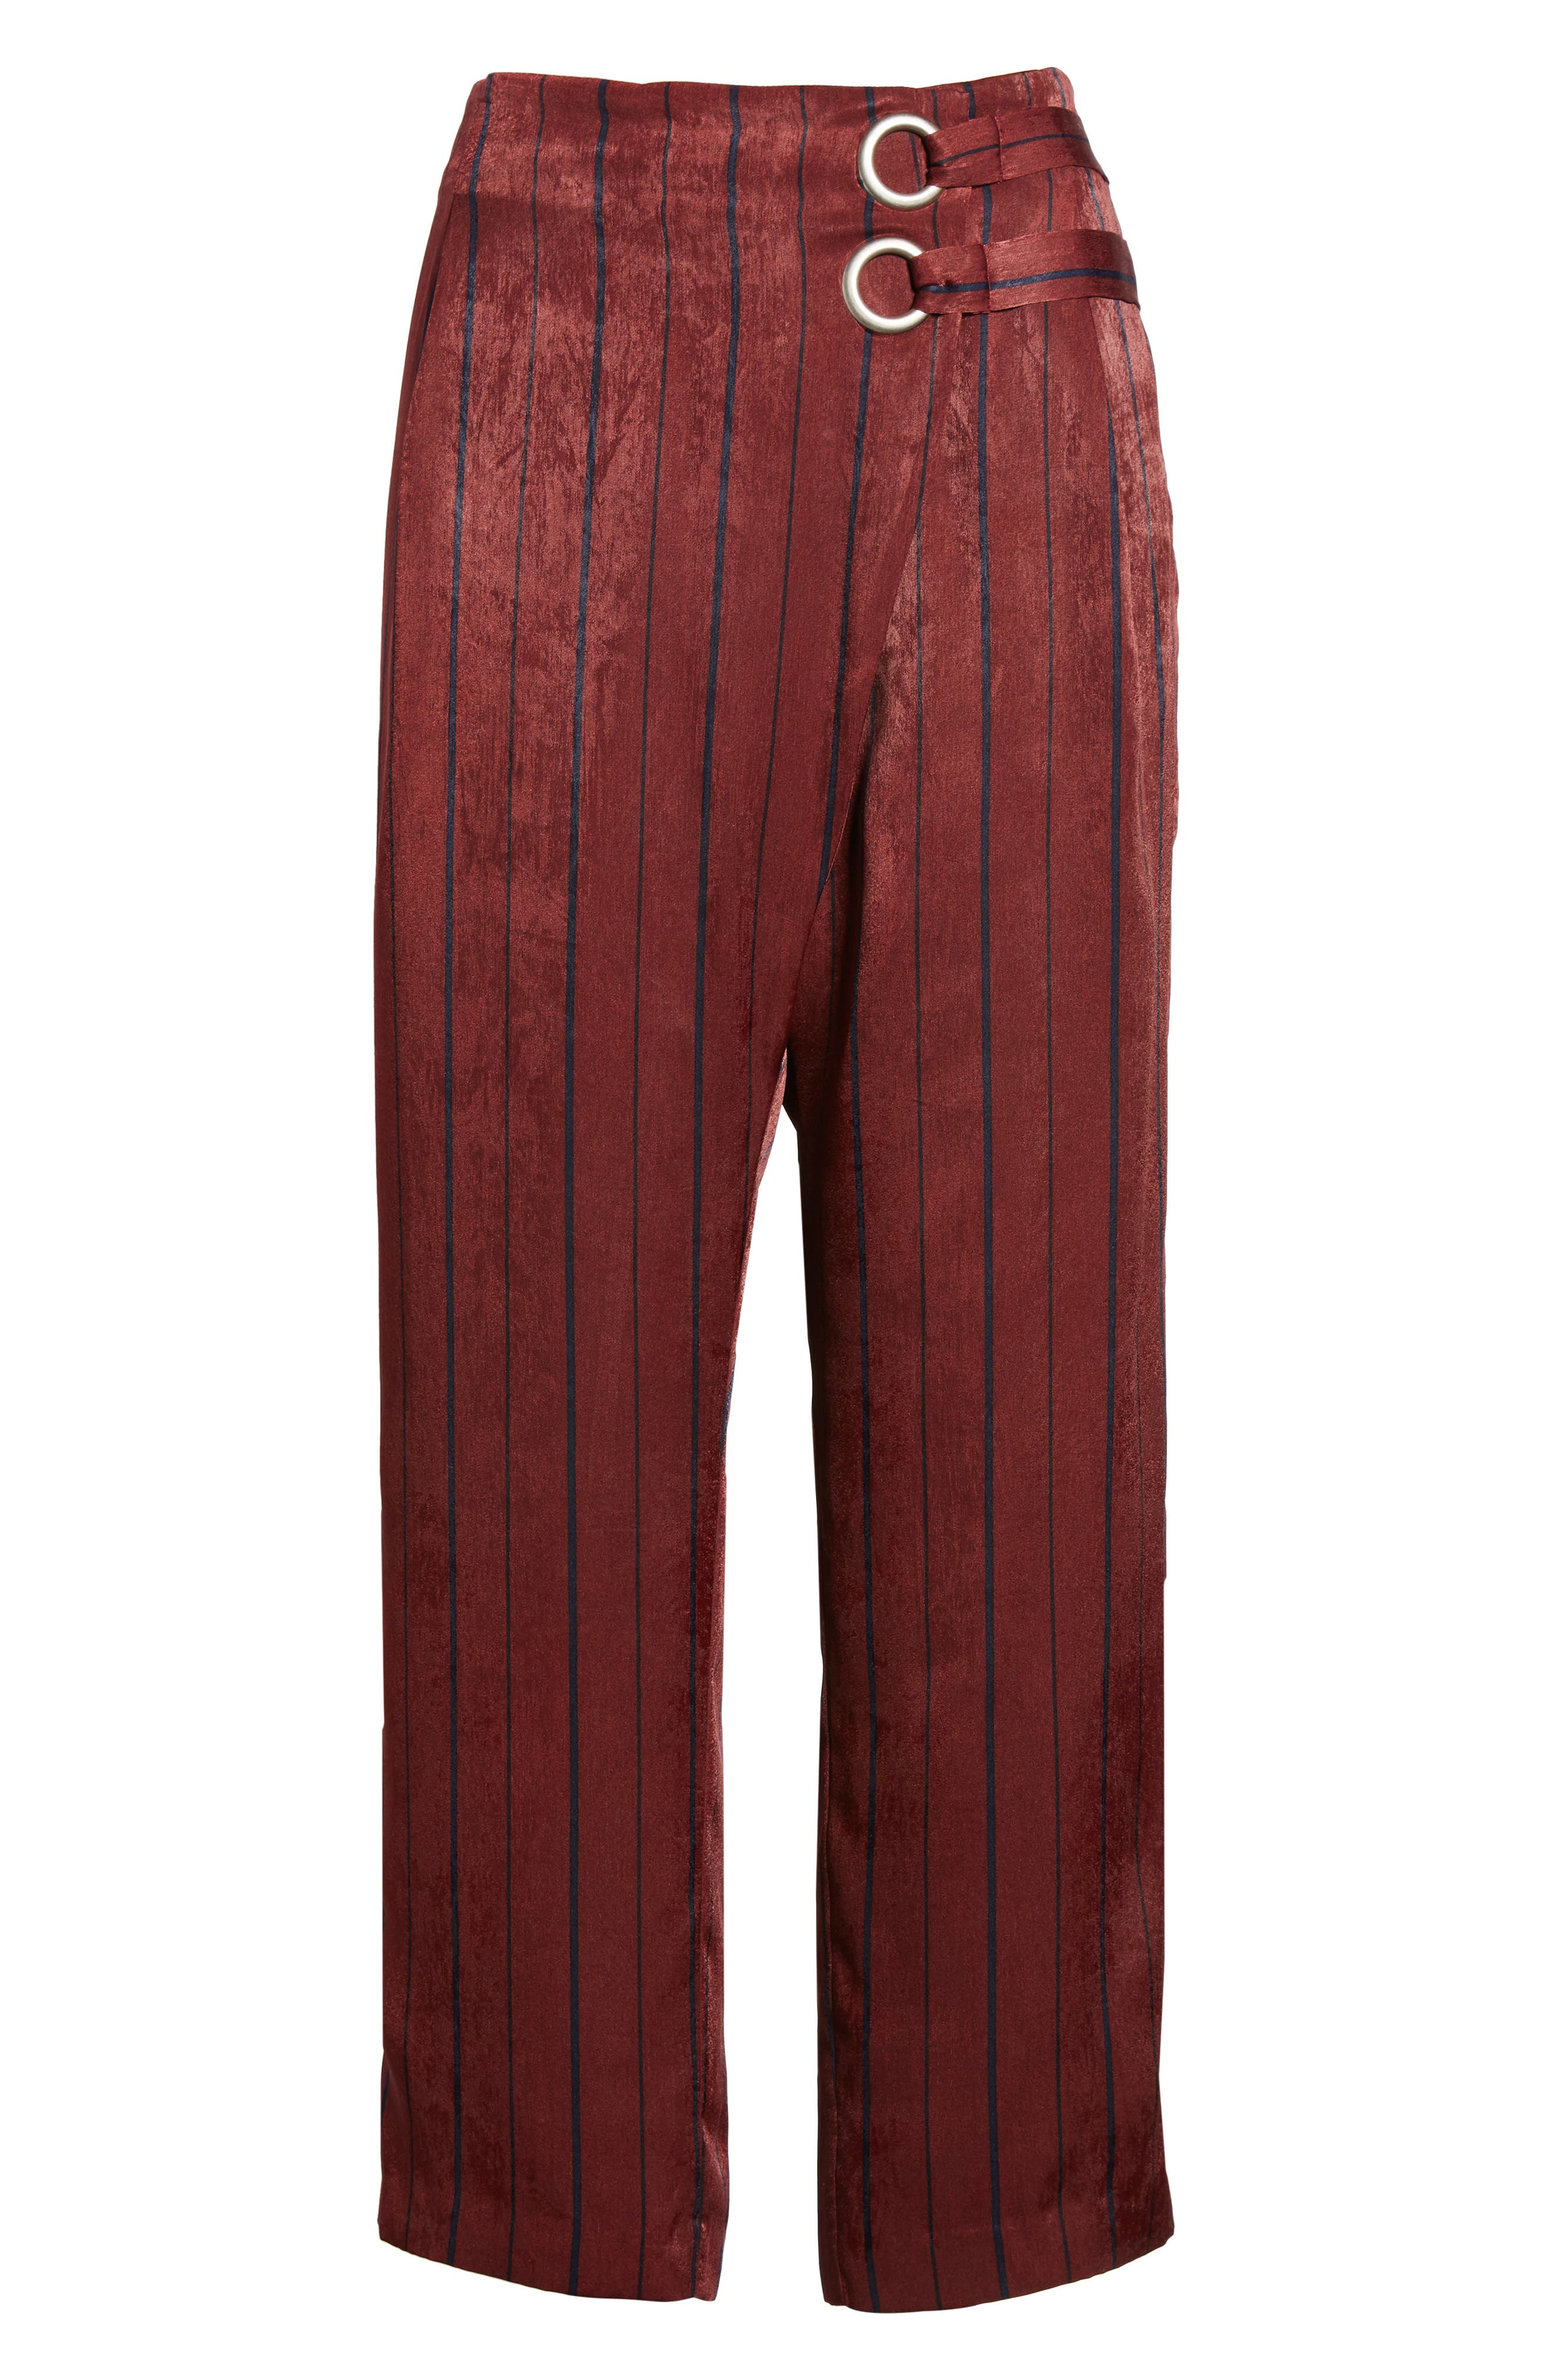 Stripe Crop Pants,                             Alternate thumbnail 7, color,                             Wine Multi